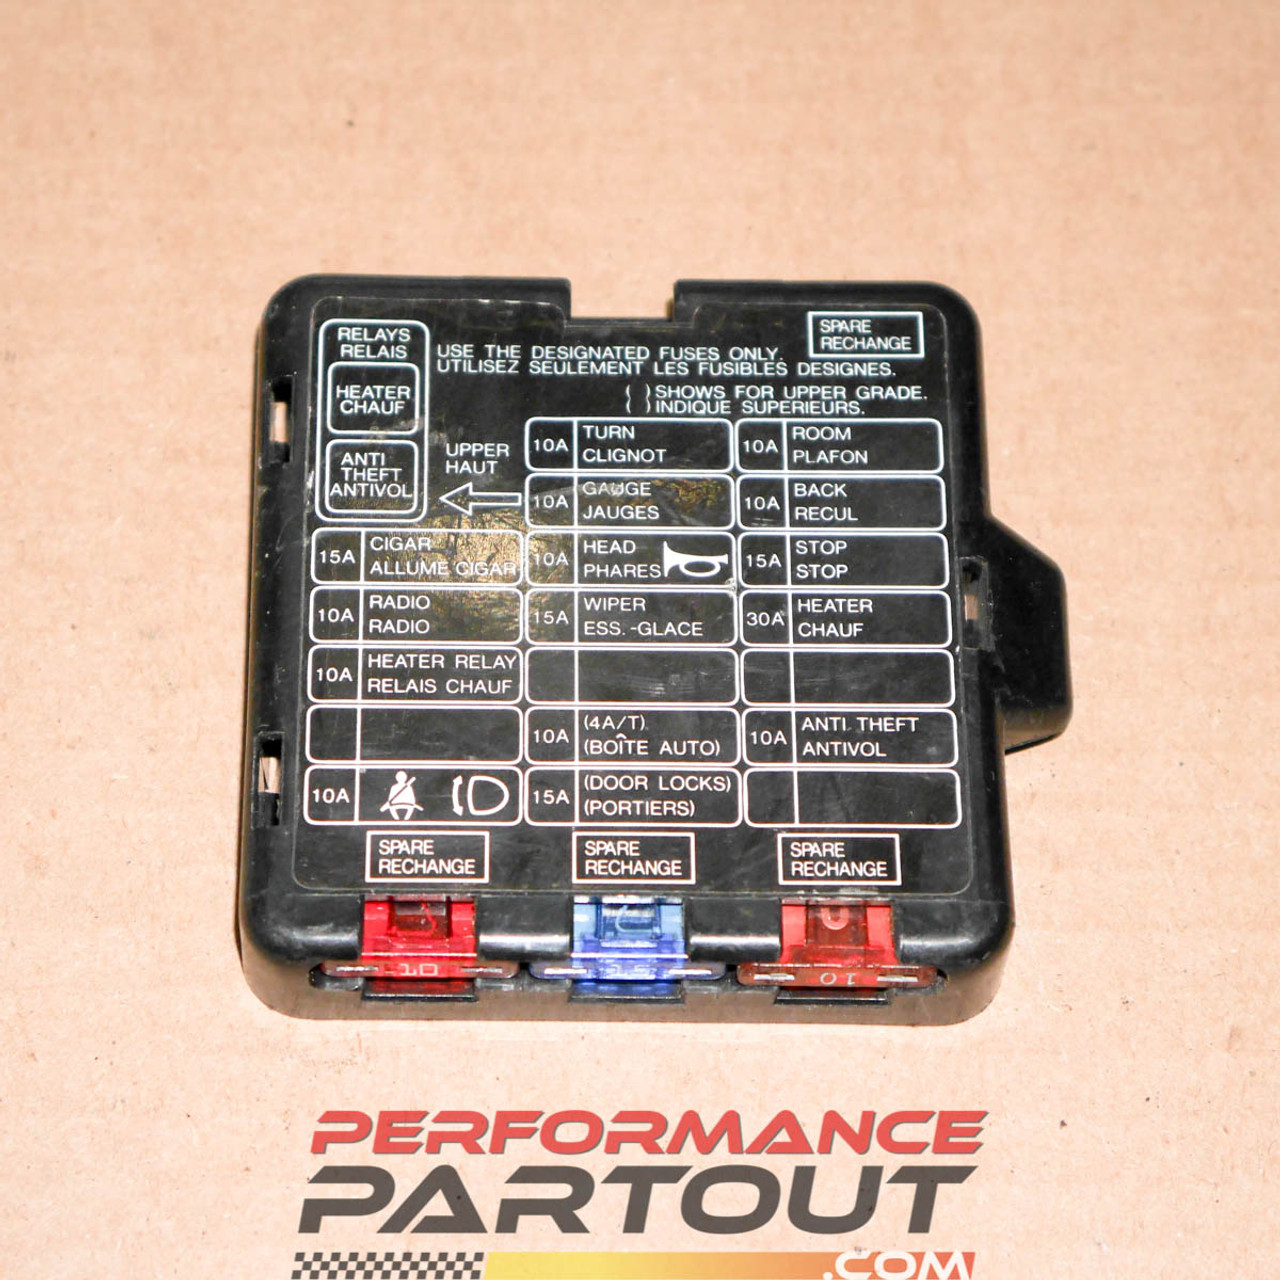 hight resolution of fuse box cover interior 90 94 dsm performance partoutfuse box cover interior 90 94 dsm